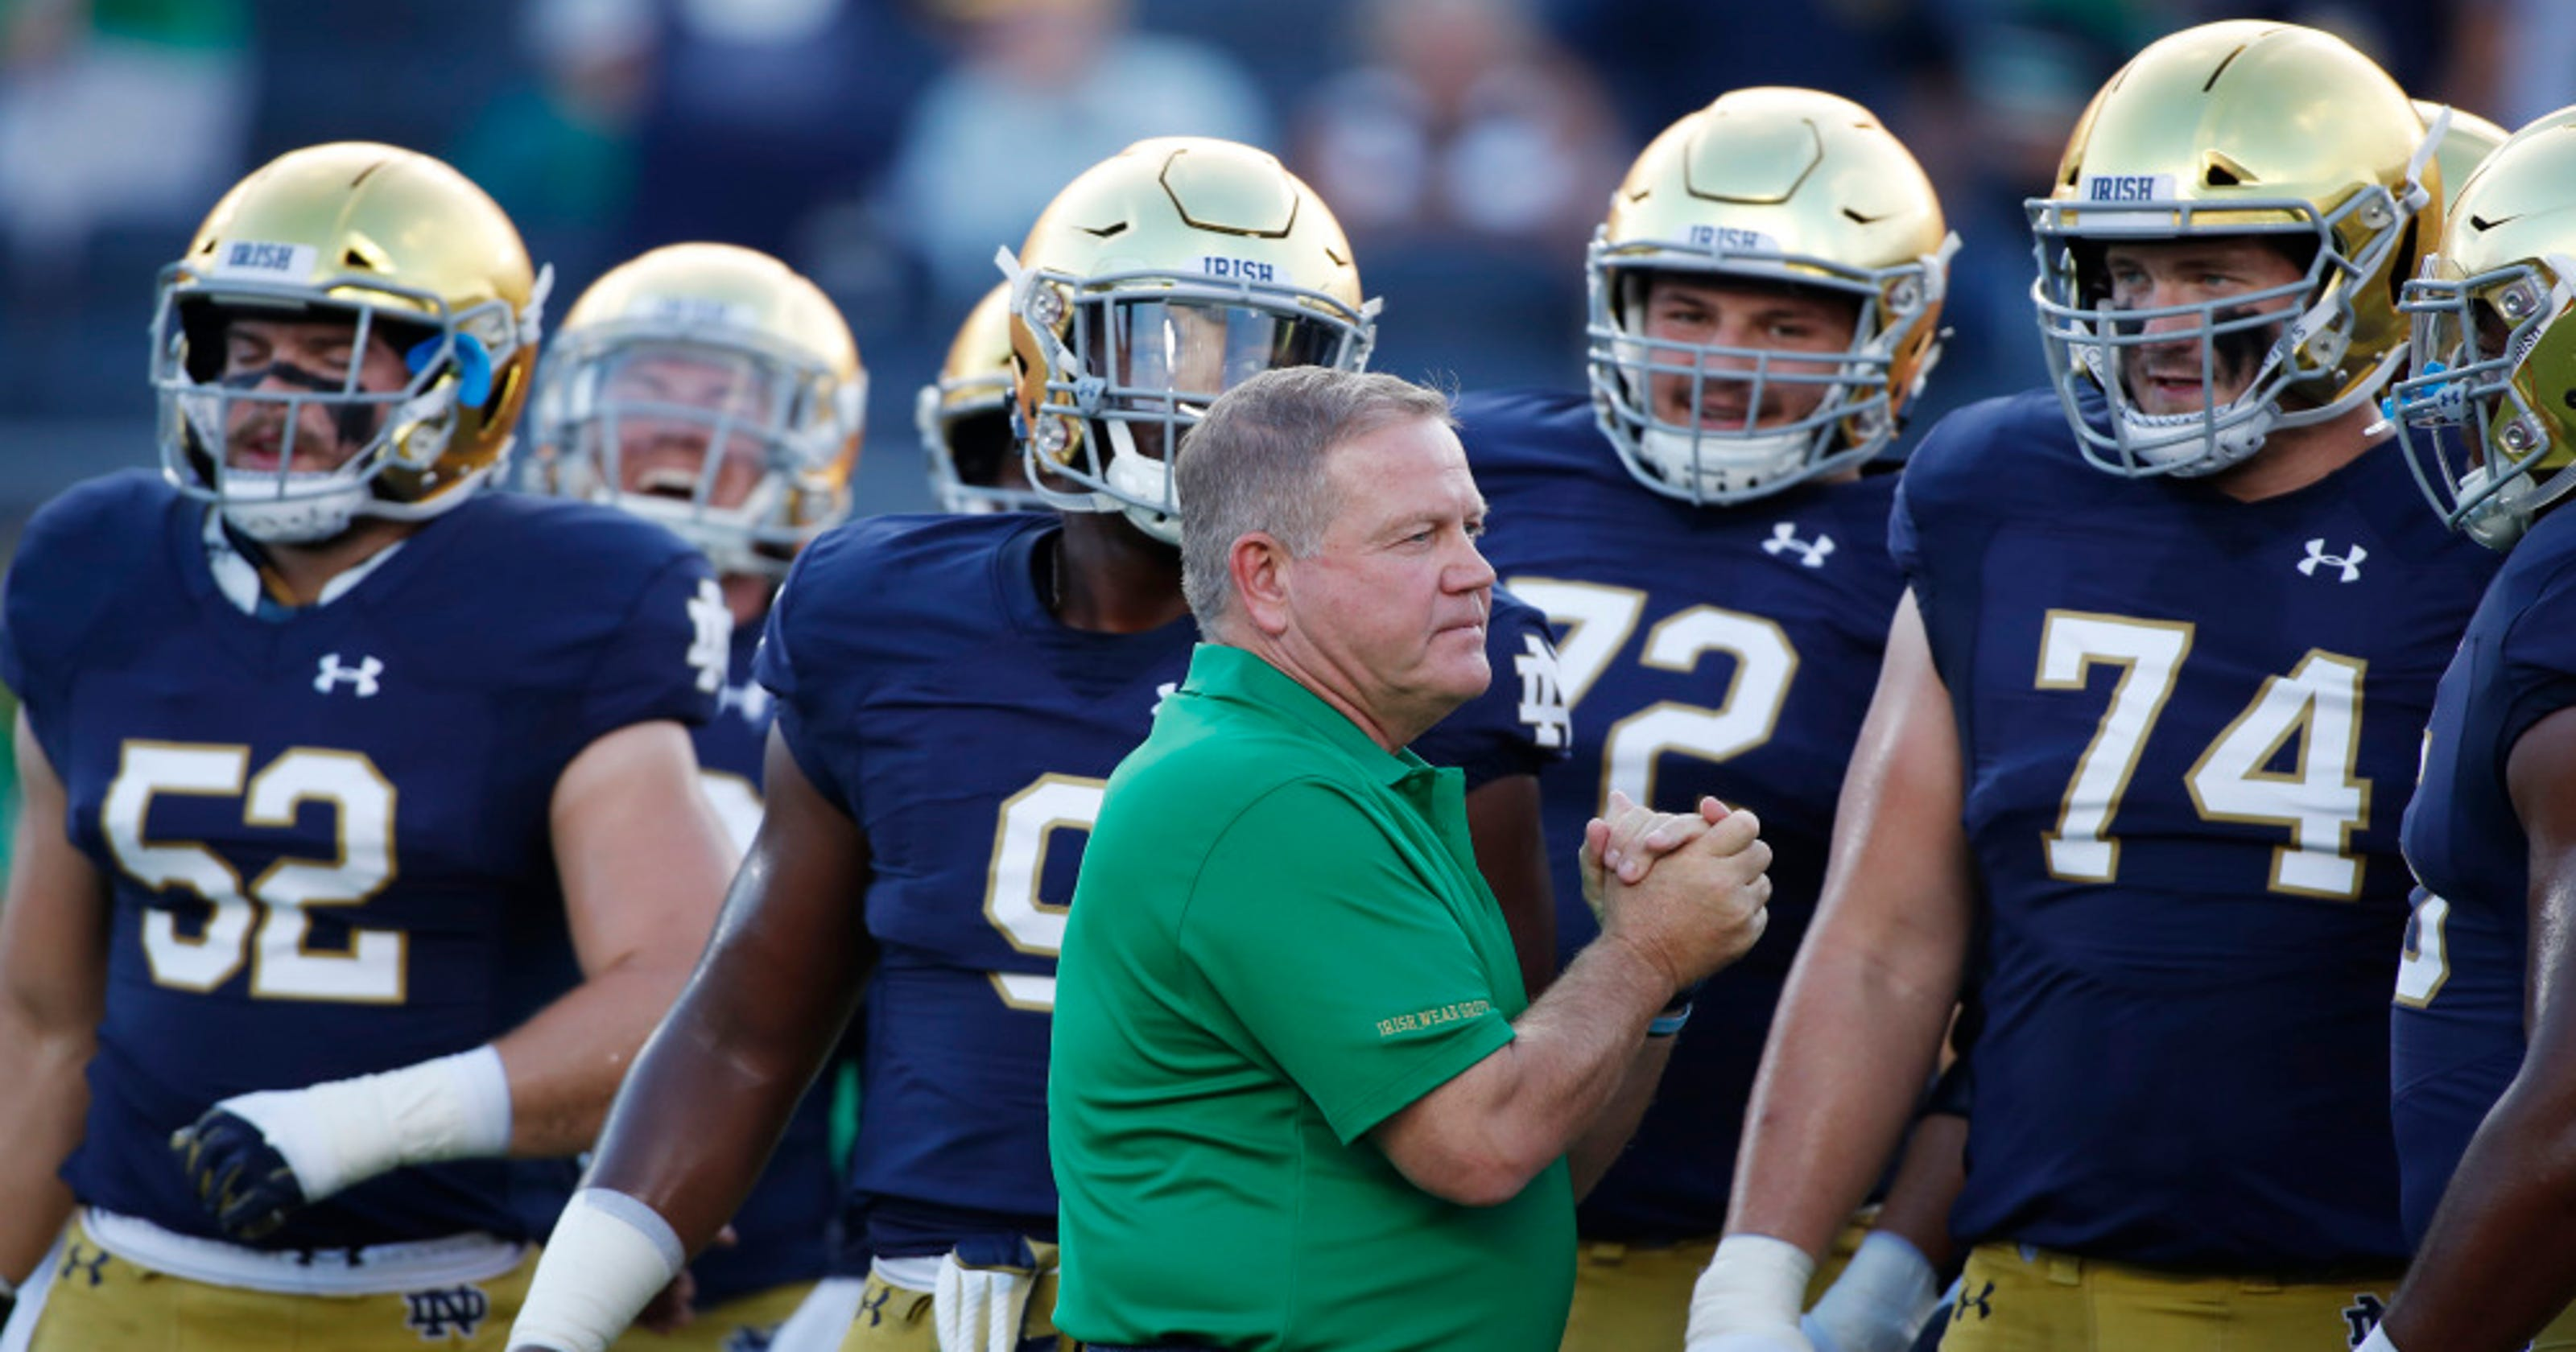 Notre Dame's power broker role in college football remains ...